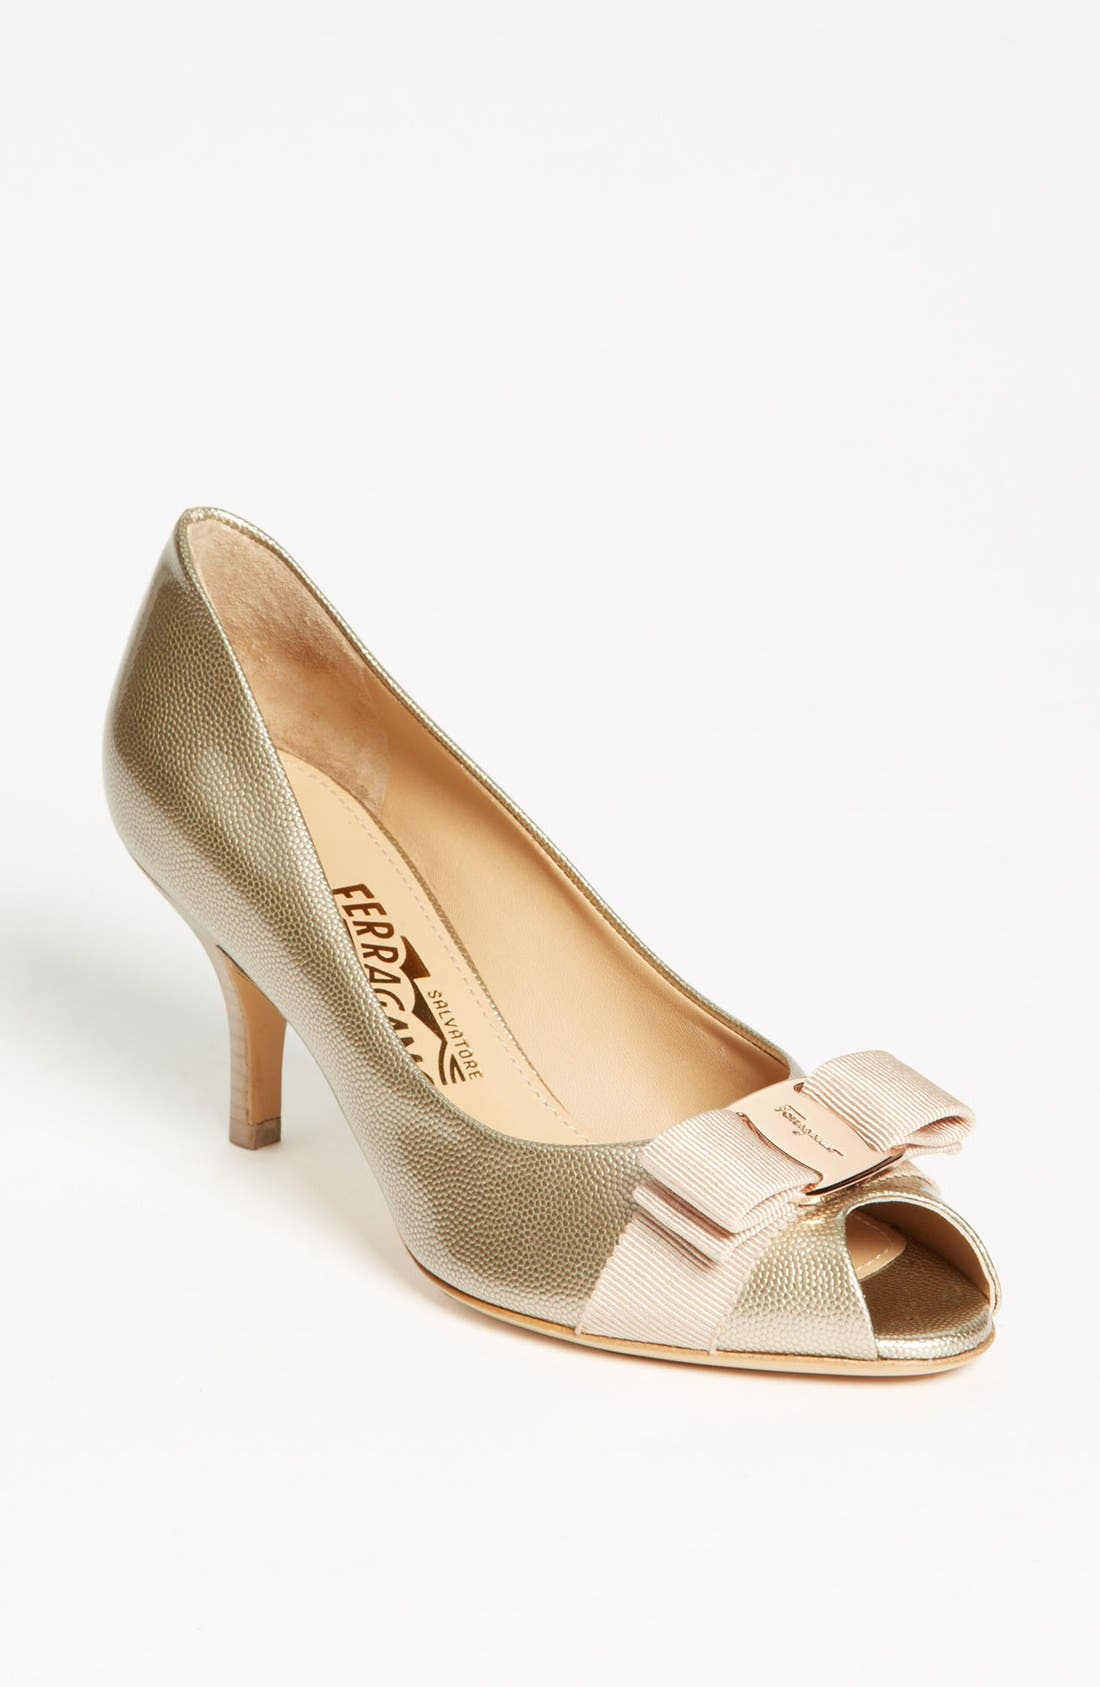 Alternate Image 1 Selected - Salvatore Ferragamo 'Ribes' Pump